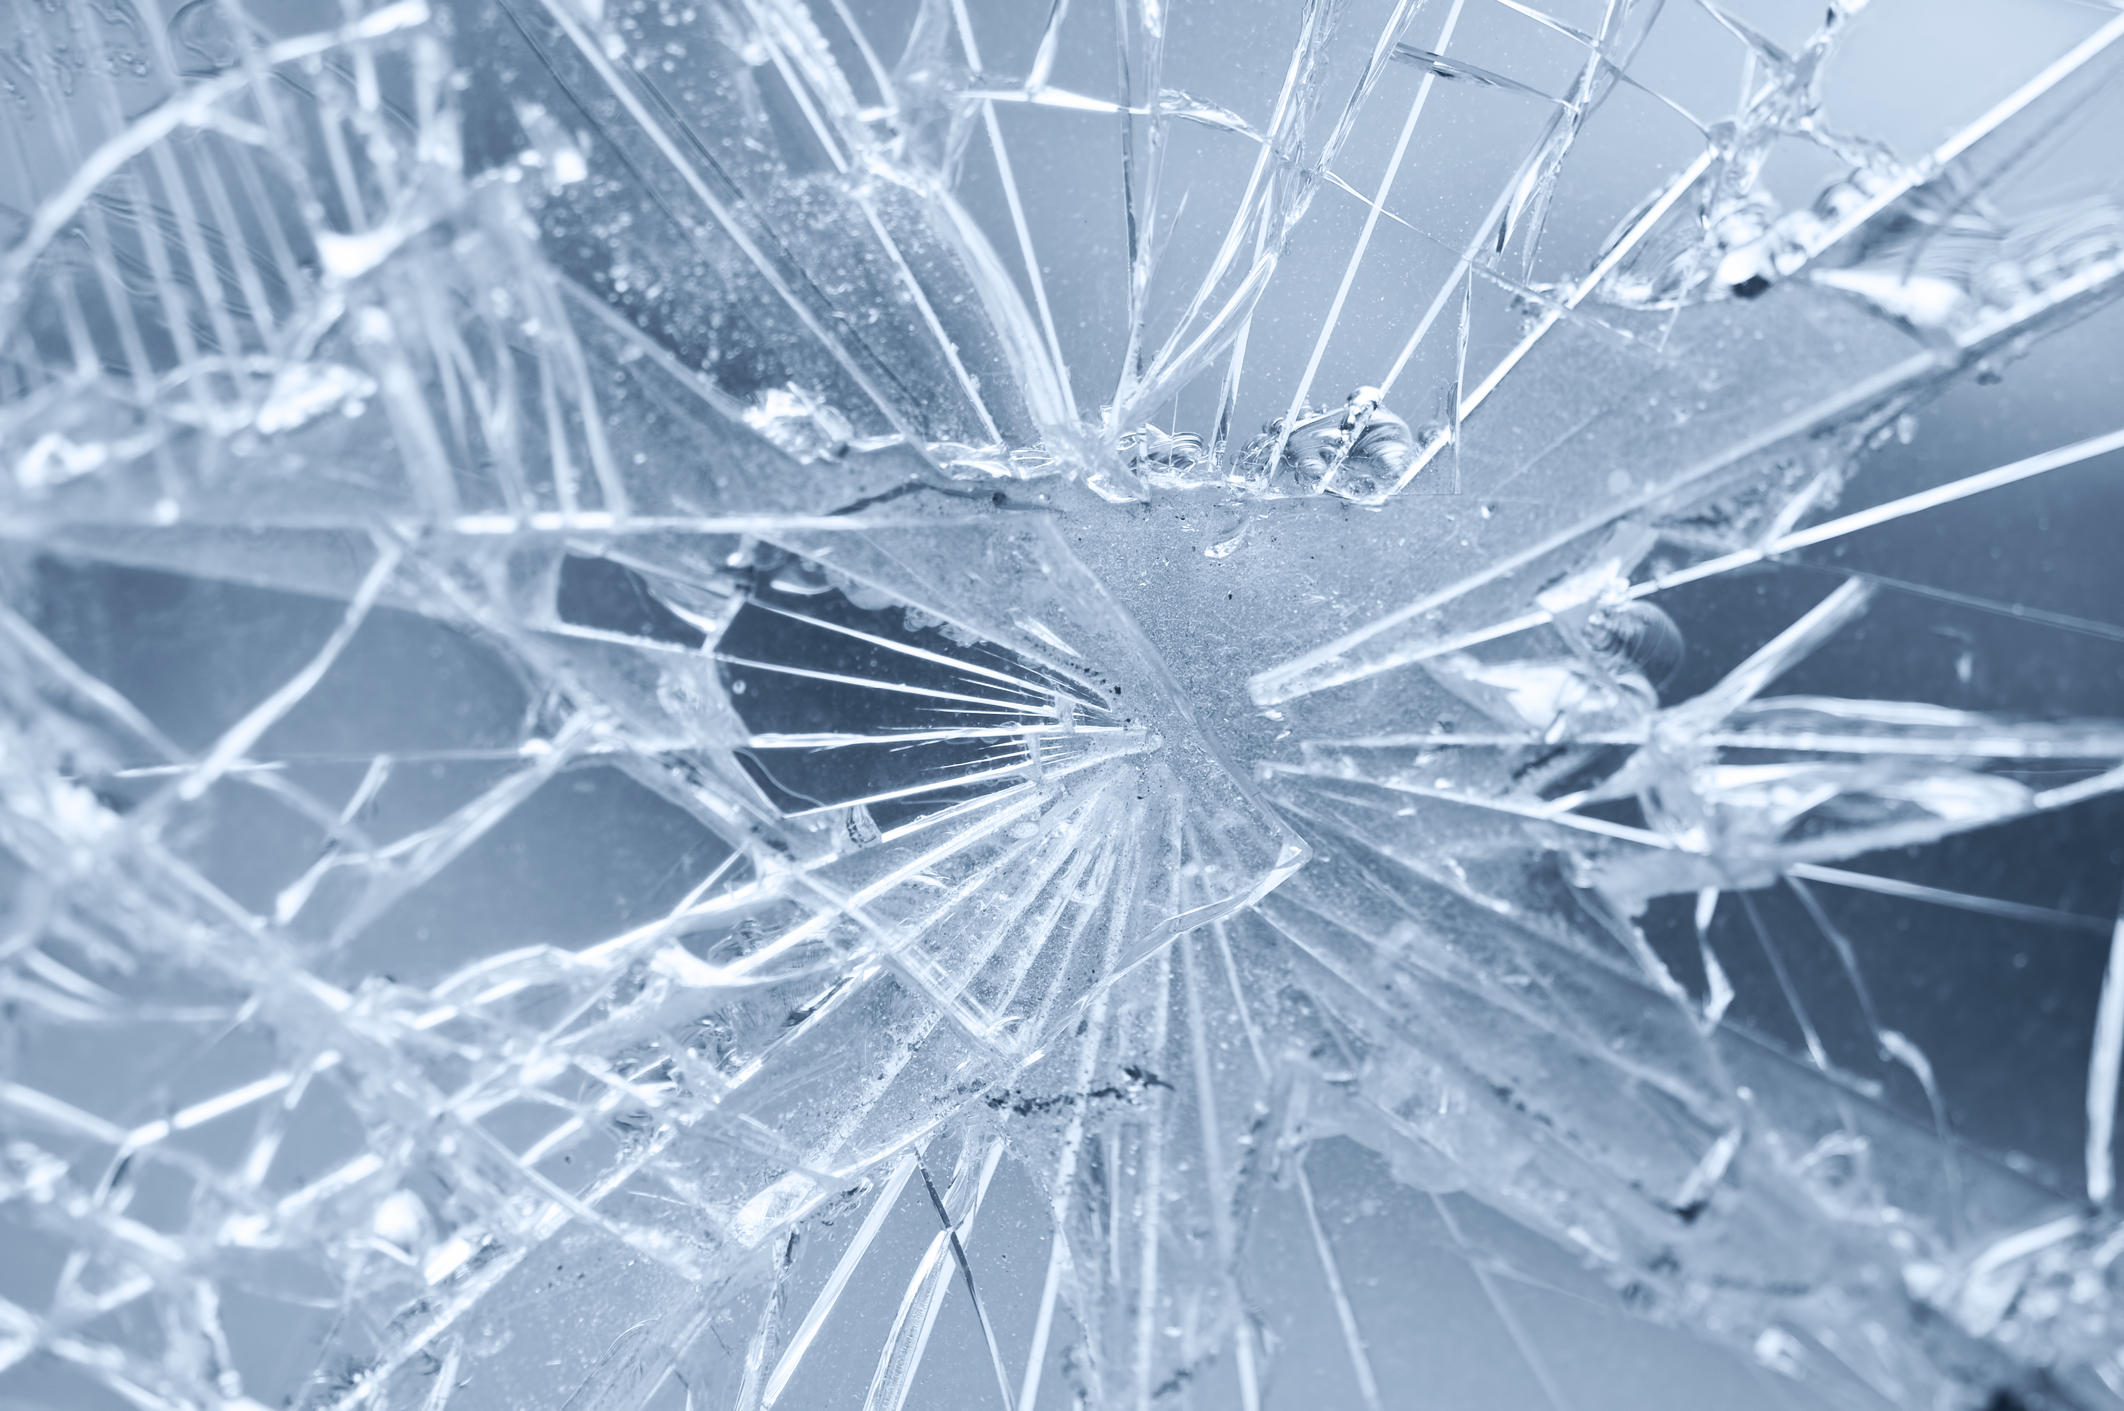 Stock image of broken glass. (Getty Images)